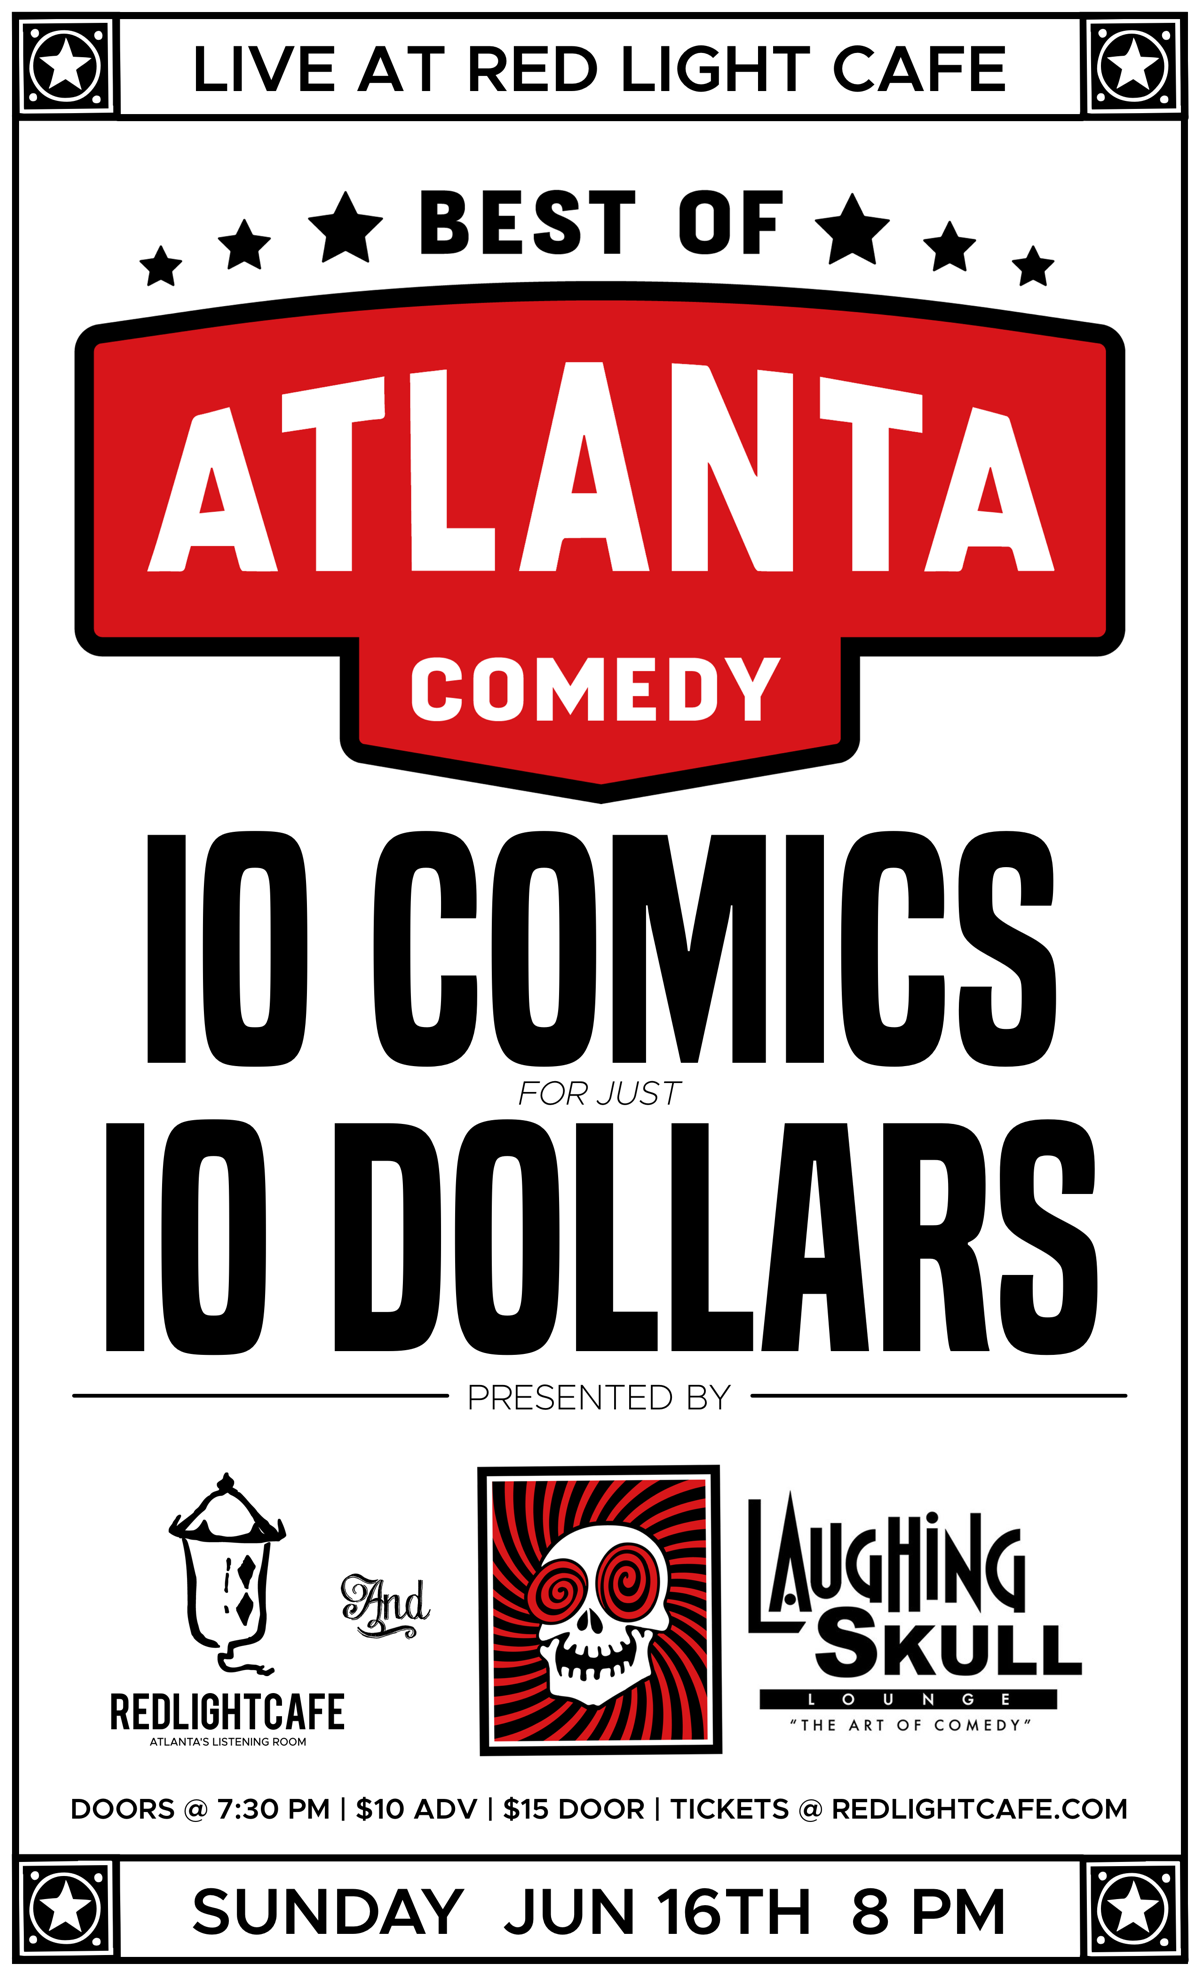 Best of Atlanta Comedy at Red Light Café presented by Laughing Skull Lounge — June 16, 2019 — Red Light Café, Atlanta, GA